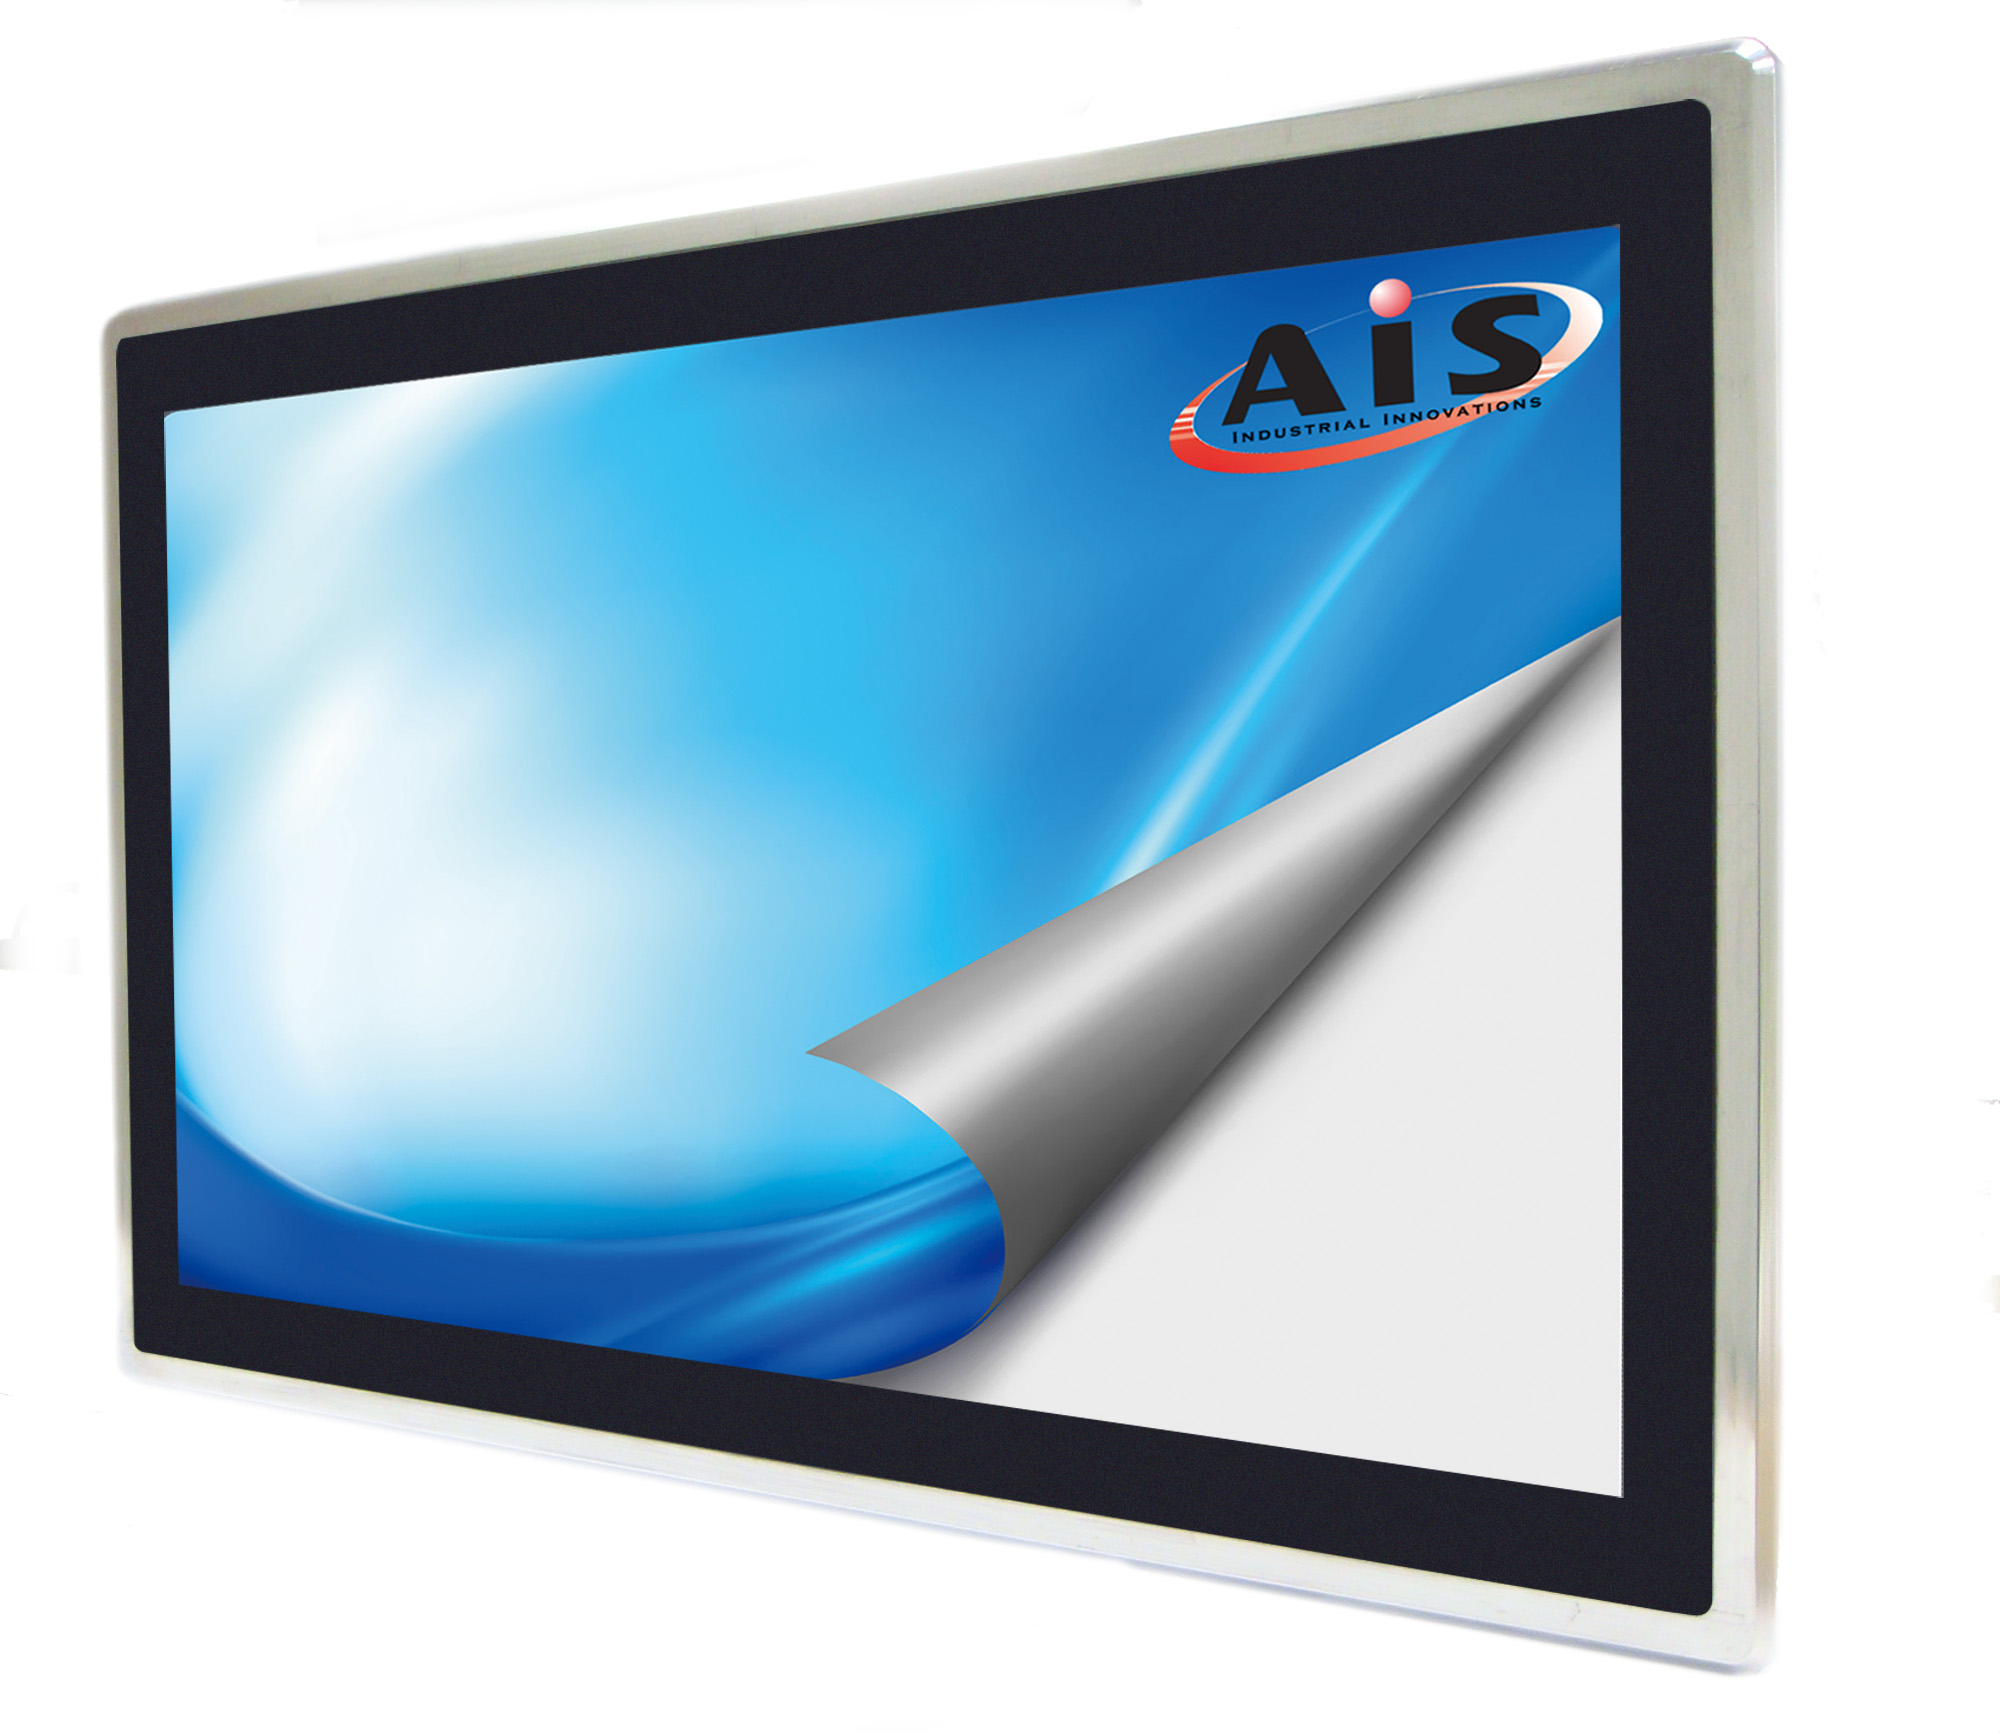 Commercial touch screen monitor